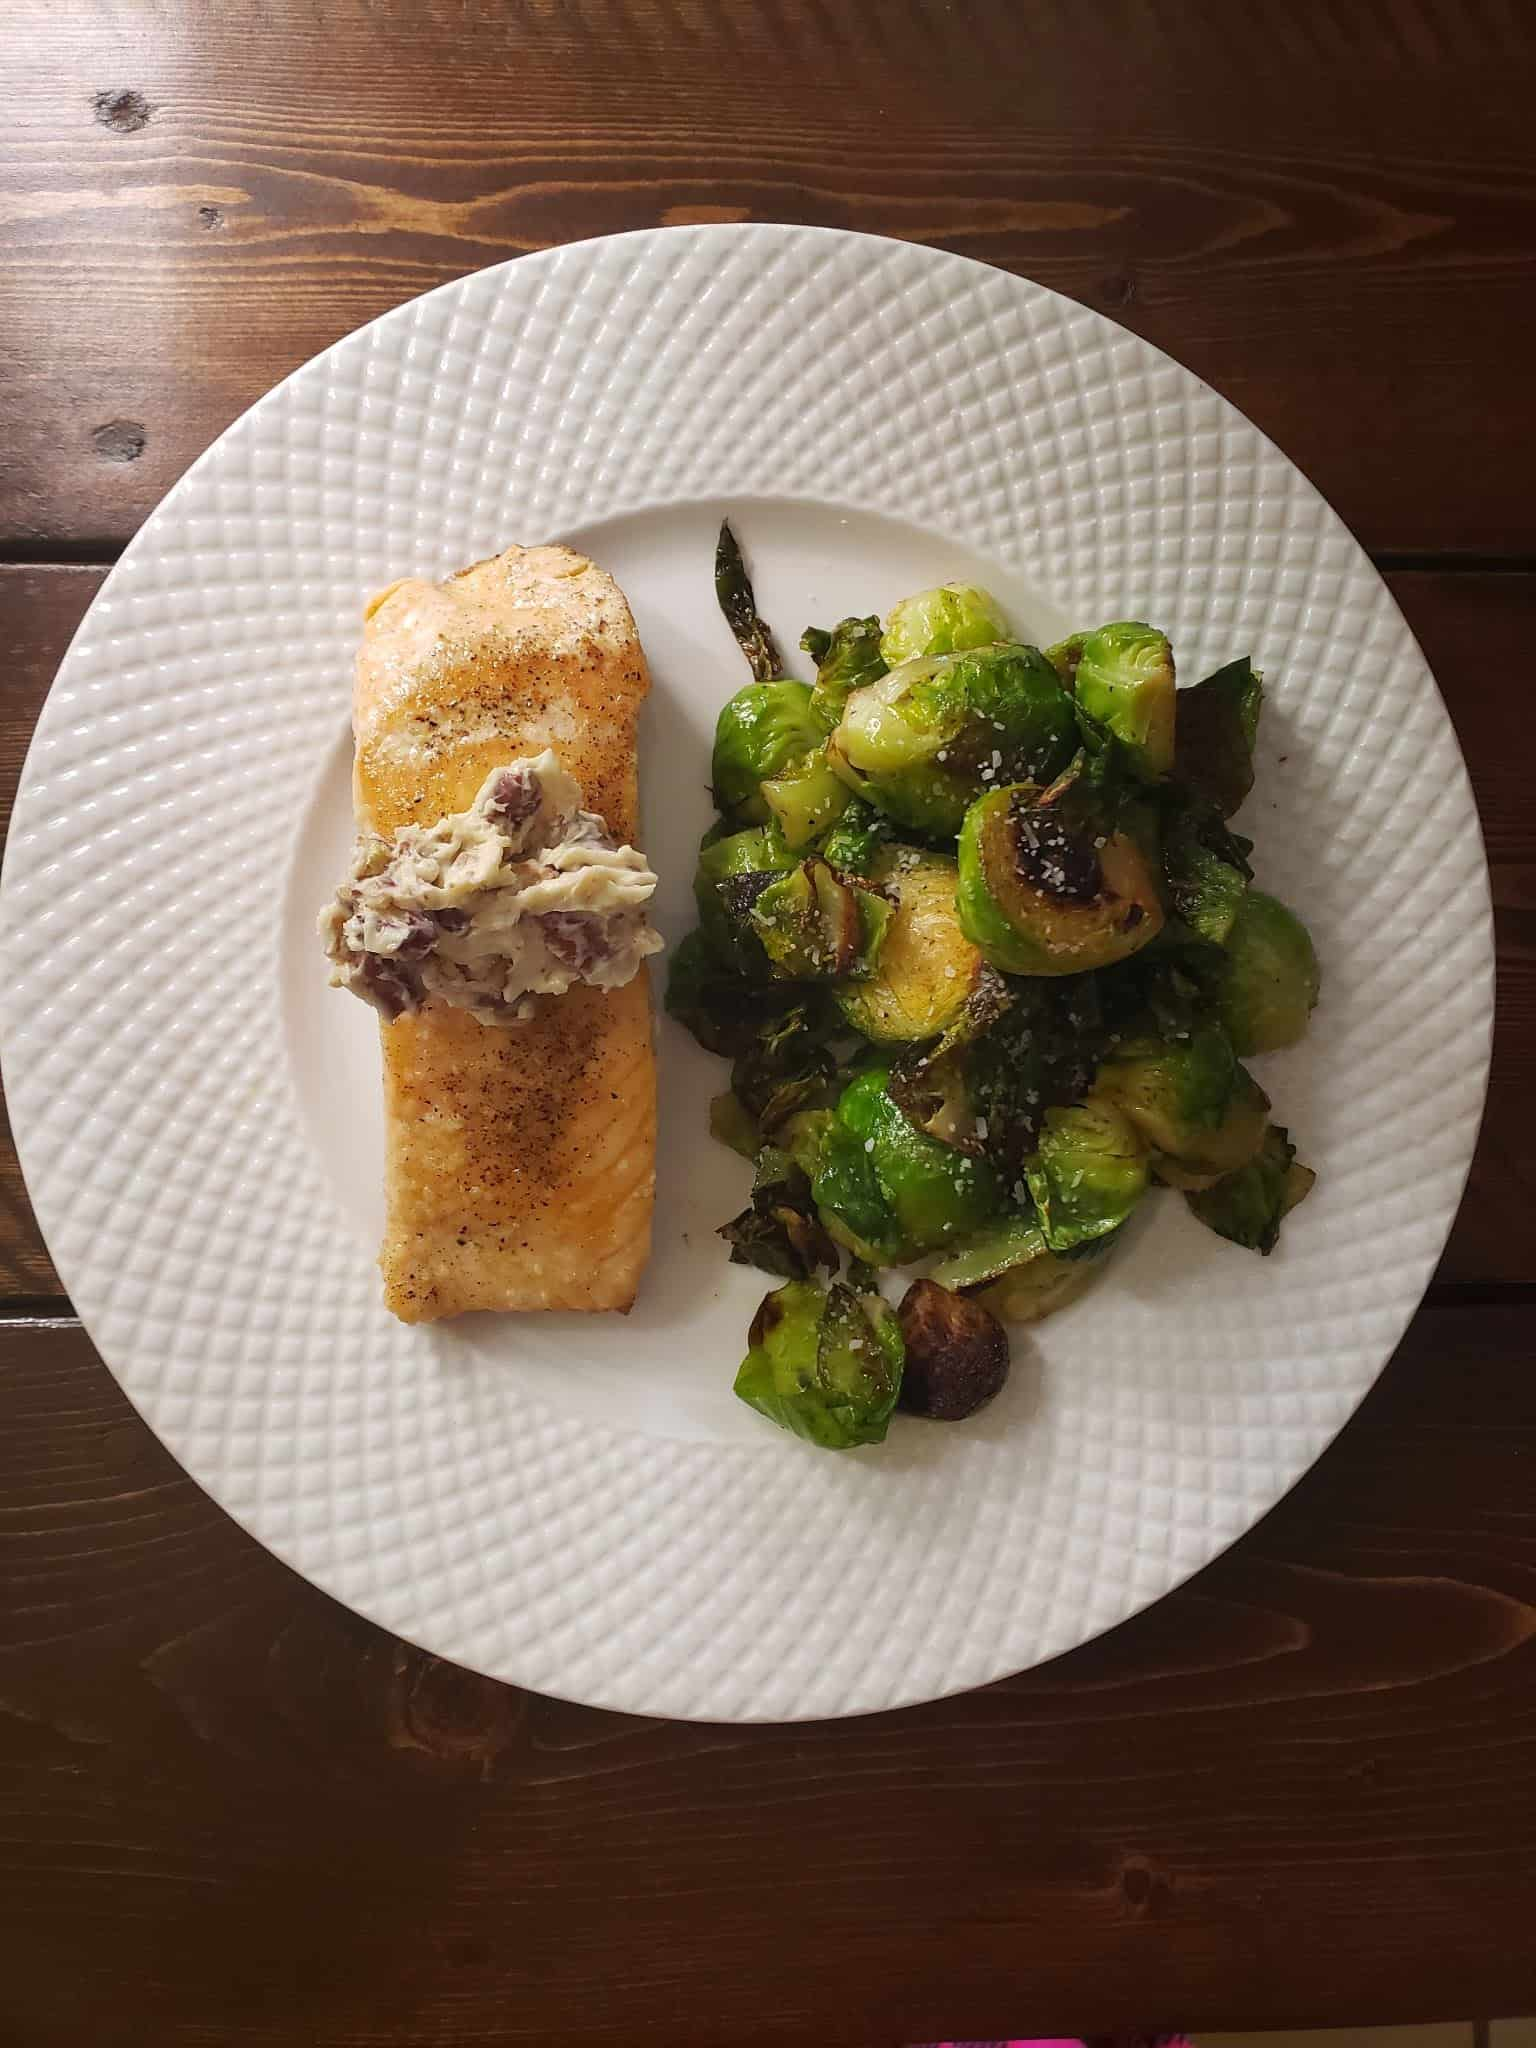 Pecan Butter Salmon and Herbed Green Beans with Caramelized Onions